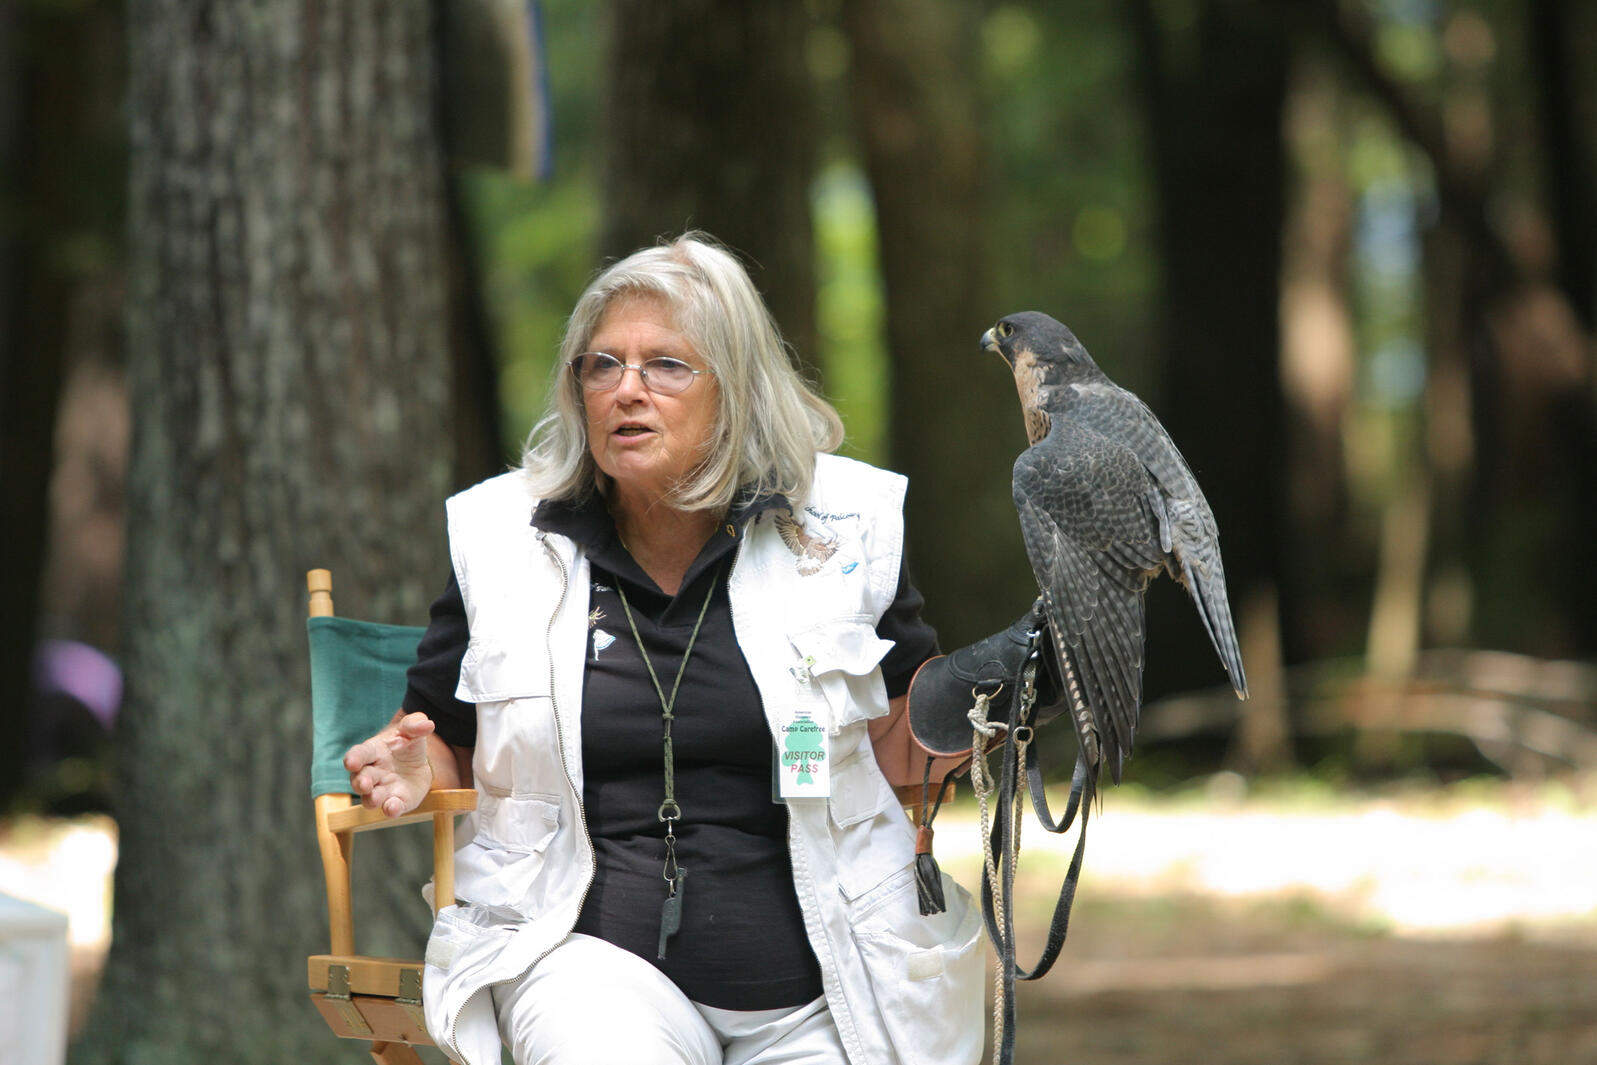 Trainer, instructor, and author Nancy Cowan with a Peregrine Falcon. Laura Murphy/ADA Camp Carefree